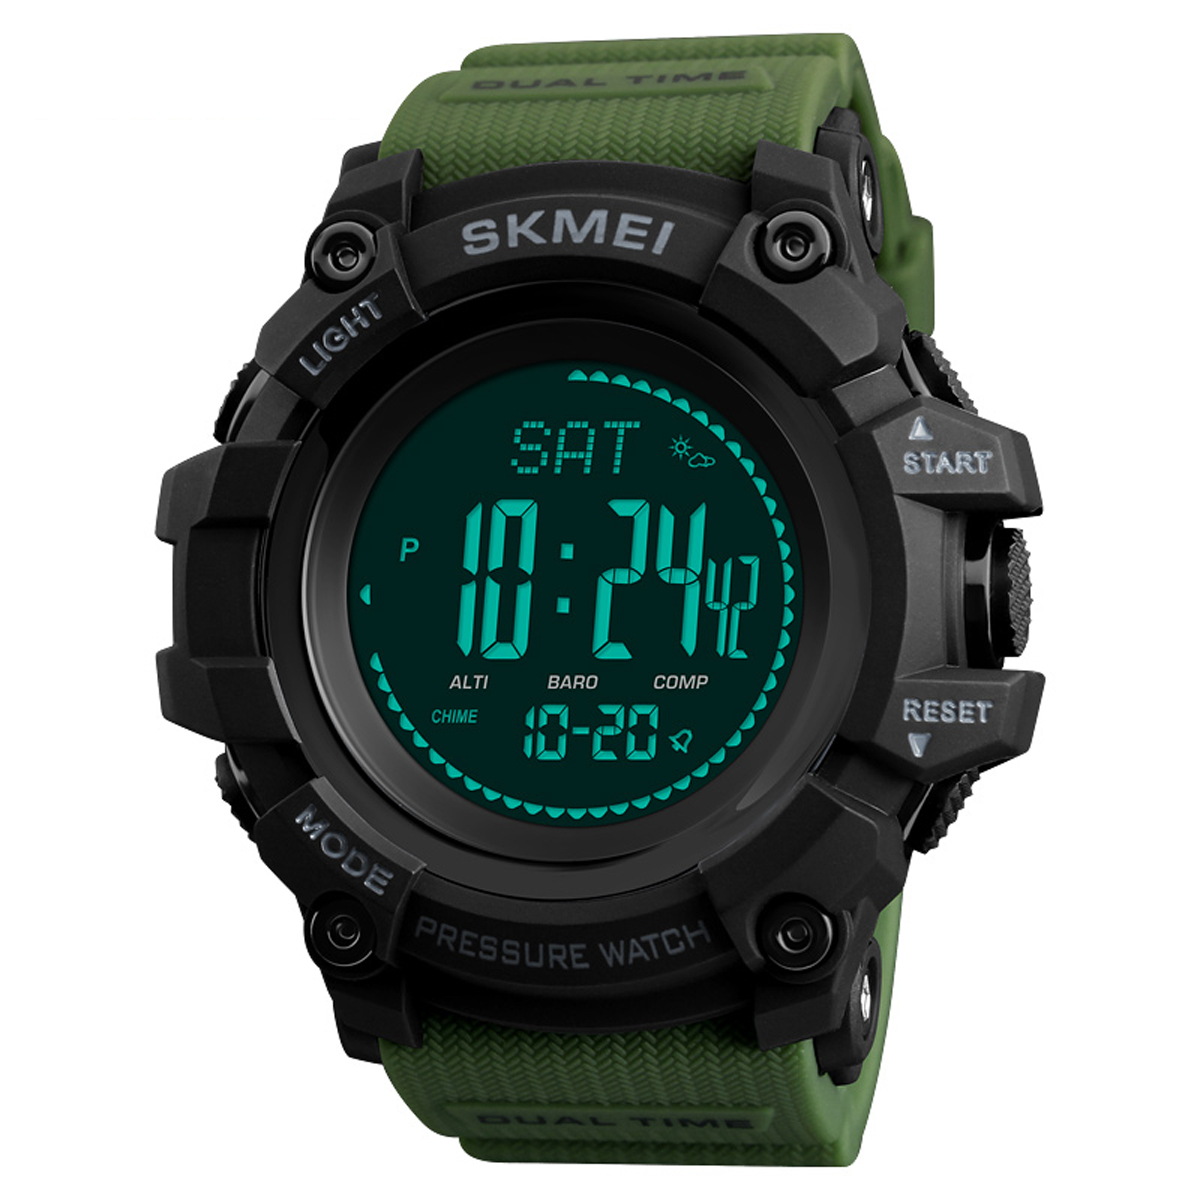 SKMEI 1358 3ATM Waterproof Smart Watch Pedometer Barometer - Green Colour